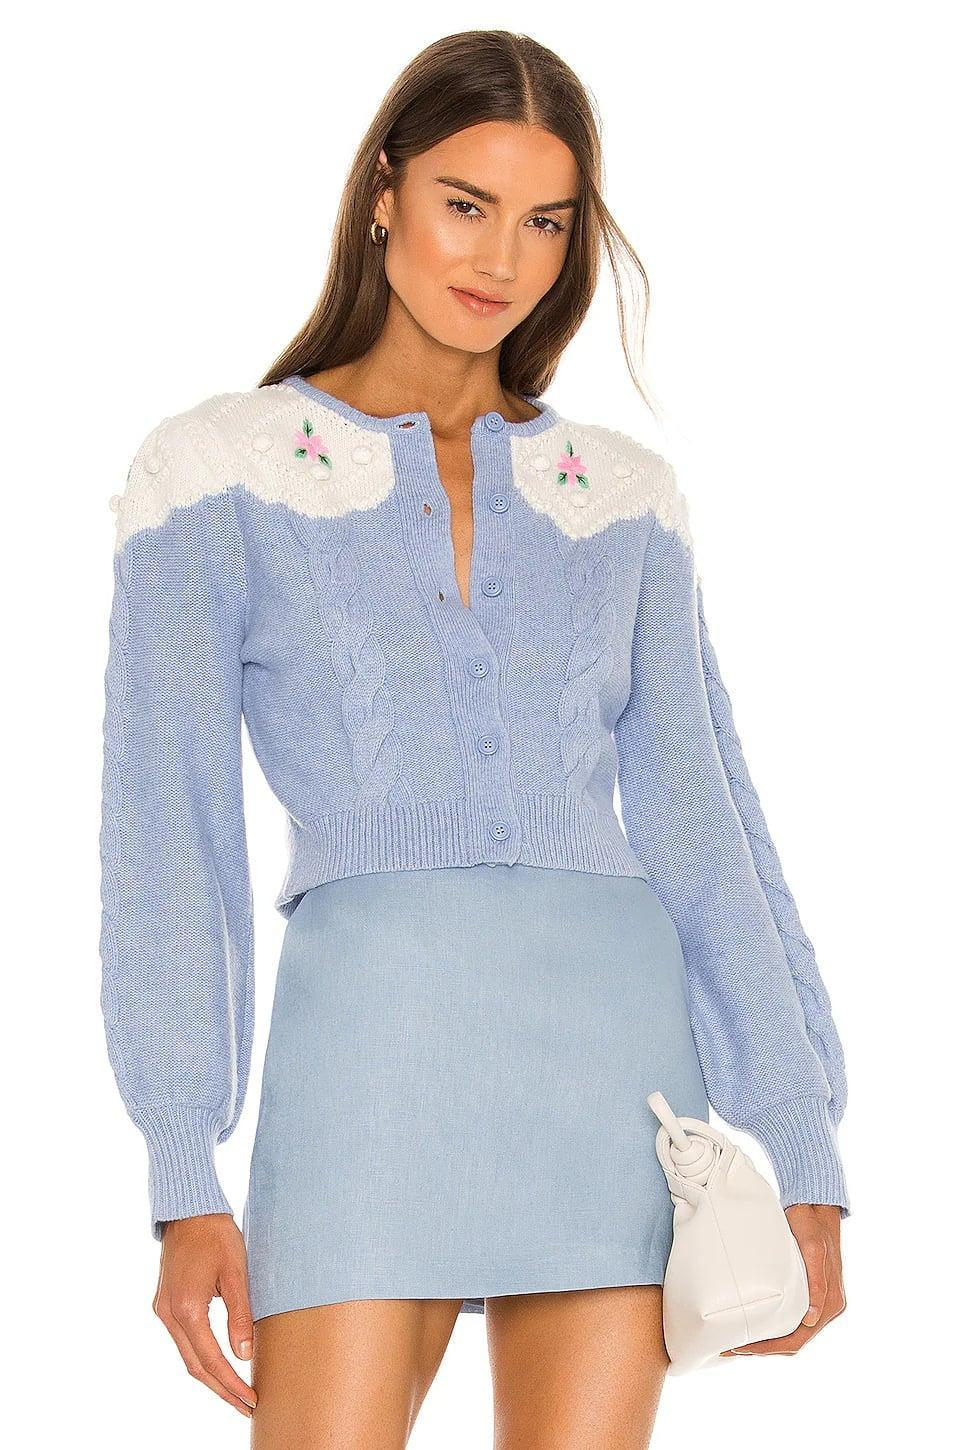 <p>The details <span>Alice McCall Day By Day Sweater</span> ($295) are so sweet. We like it paired with light wash denim and a sandal or boot going out at night.</p>